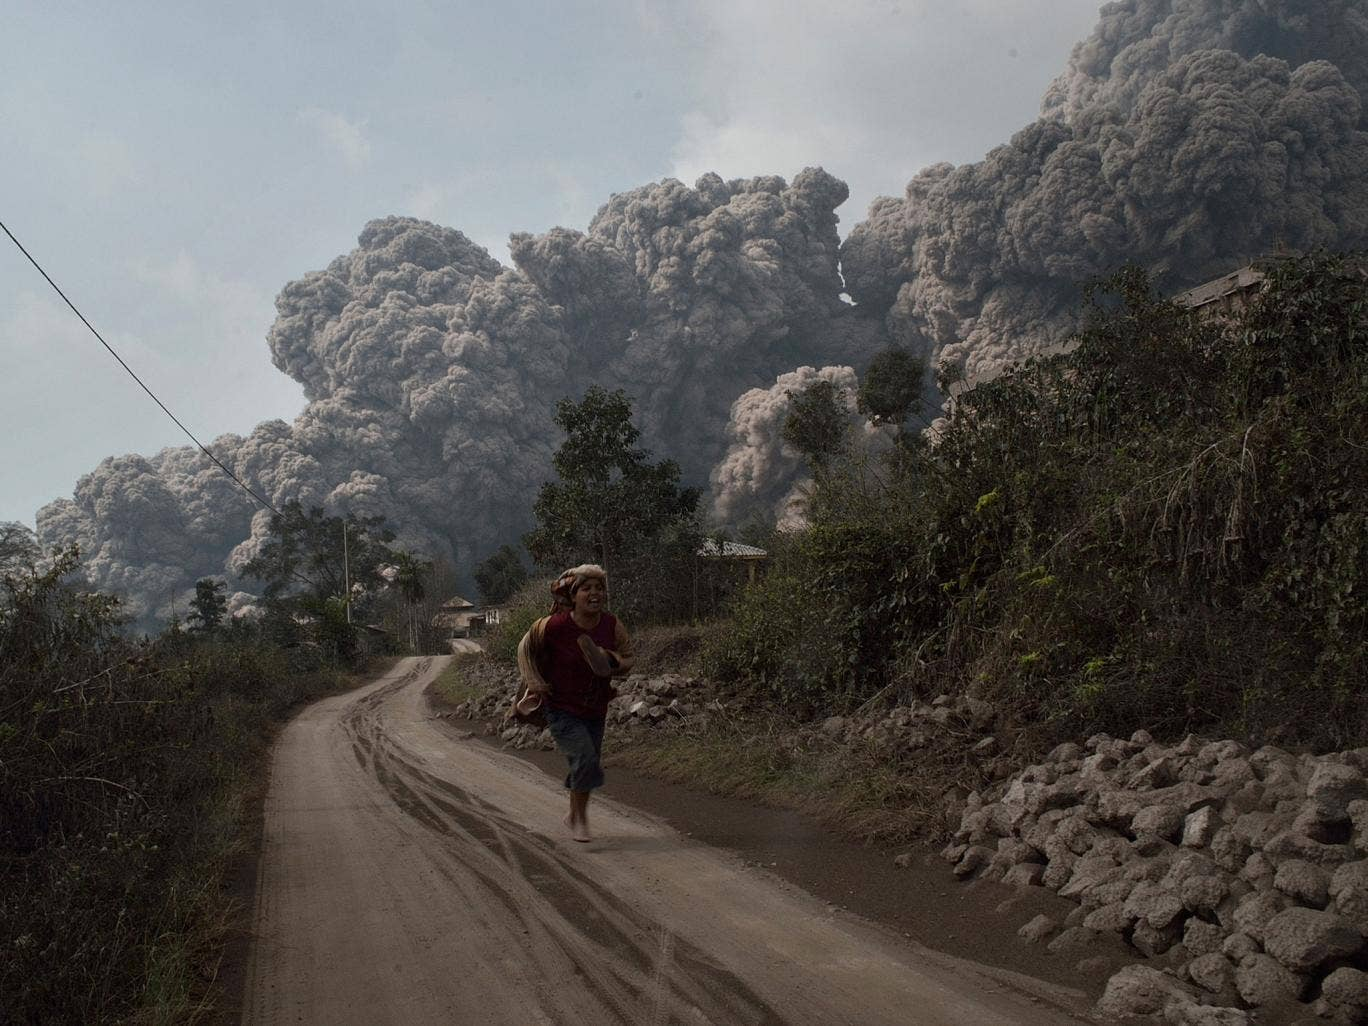 A resident runs away to escape from hot volcanic ash clouds engulfing villages in Karo district during the eruption of Mount Sinabung volcano in Sumatra.